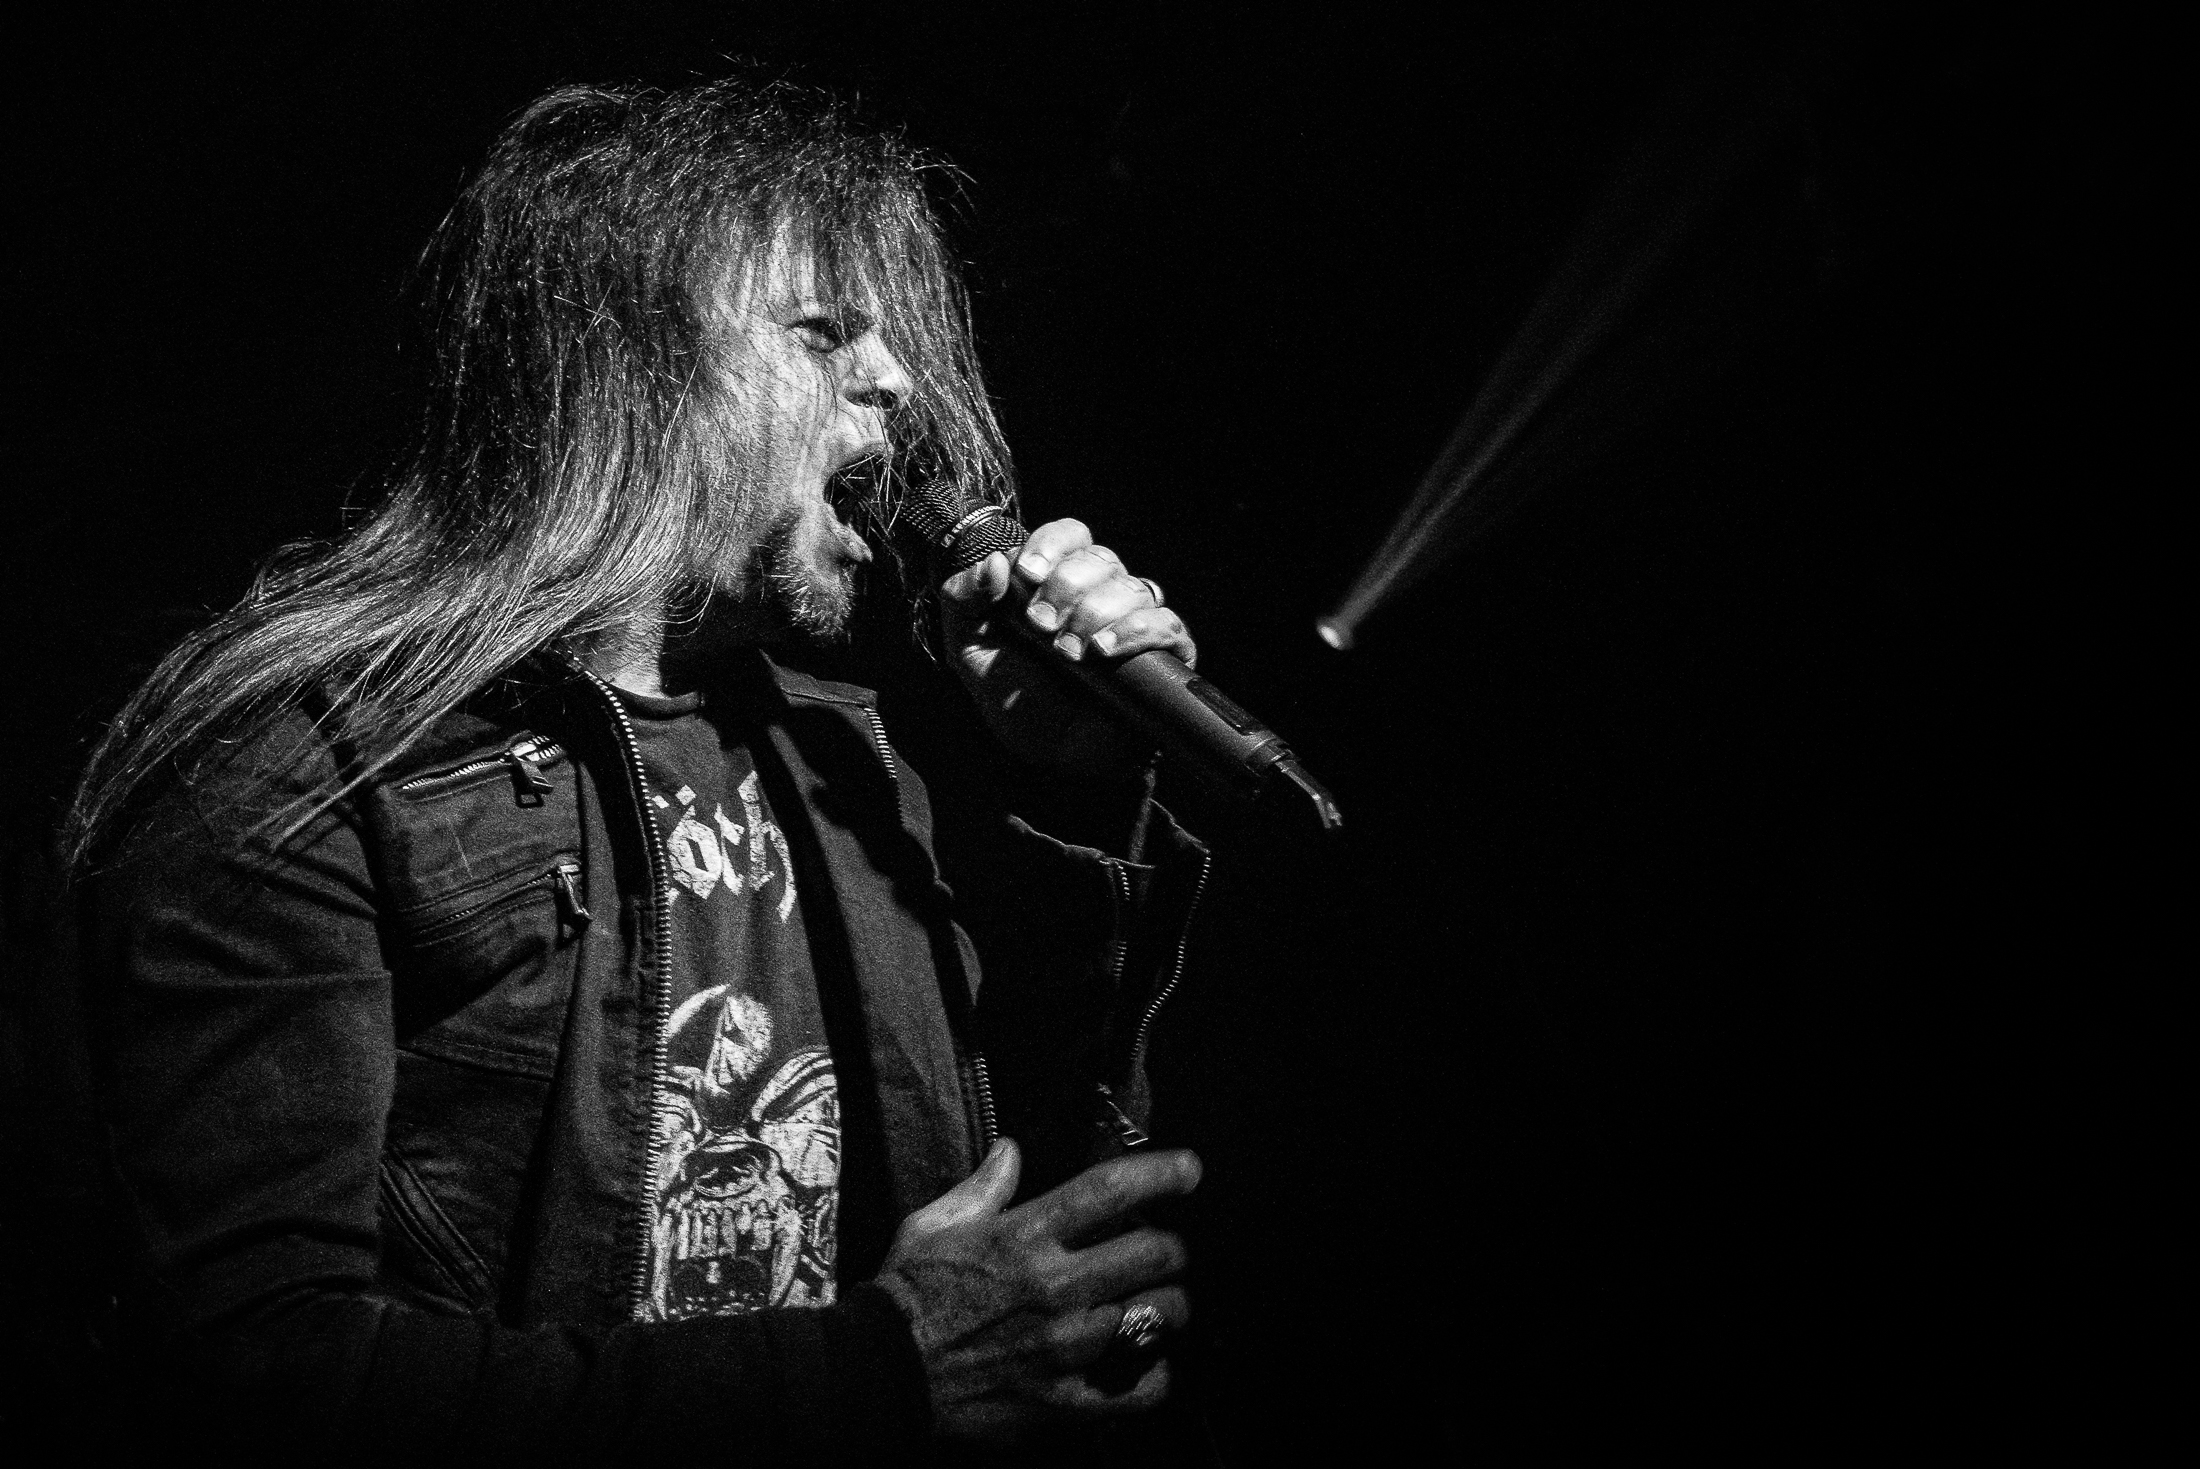 queensryche - melbourne - 2016 - paul tadday photography - 4.jpg